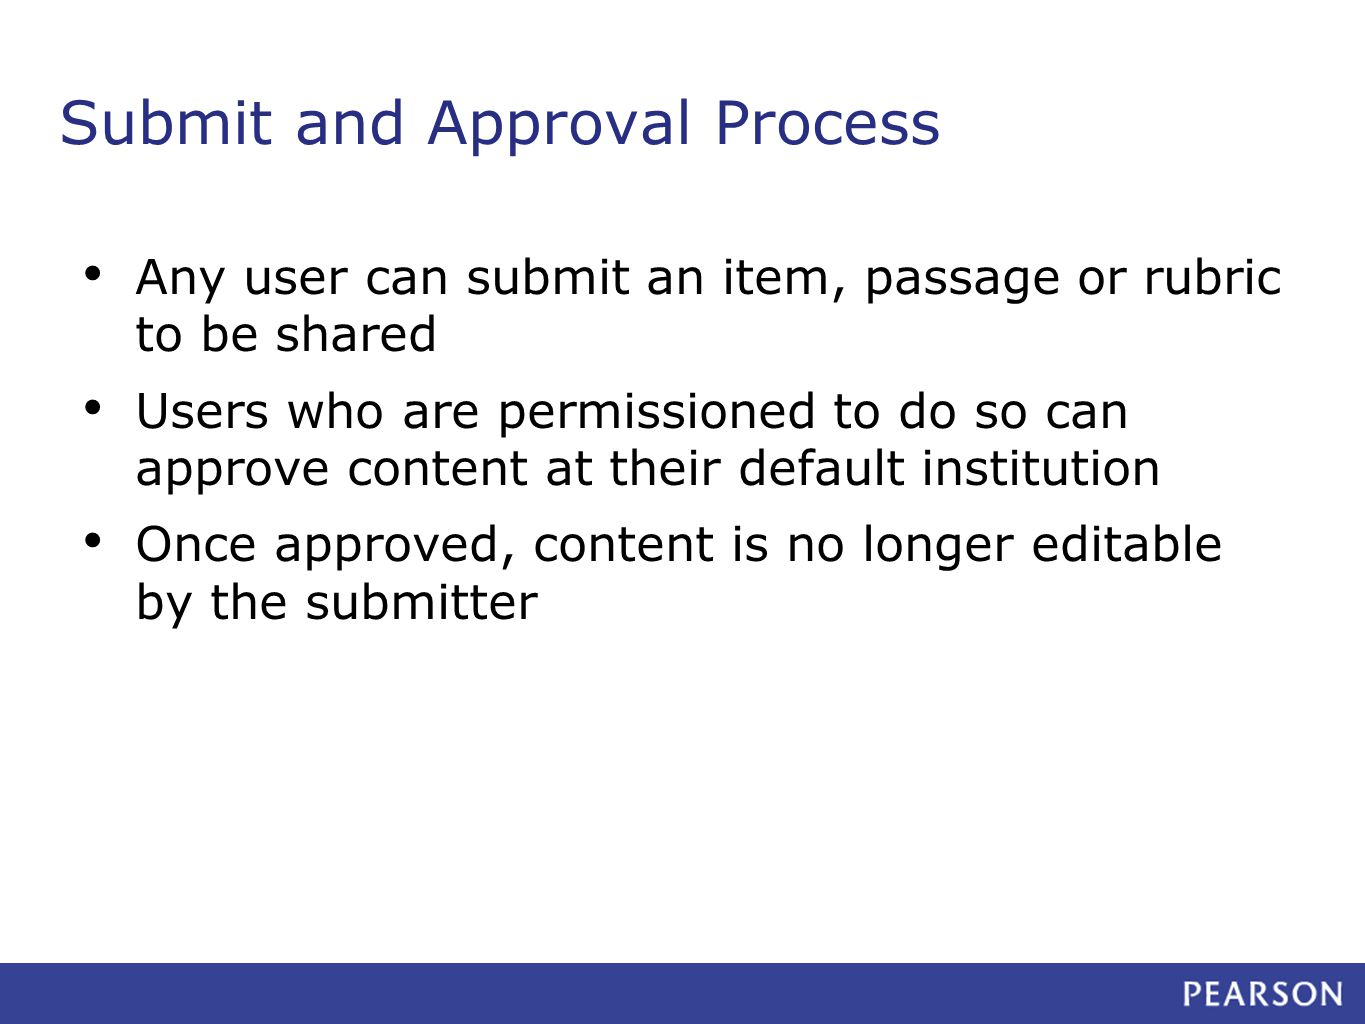 Submit and Approval Process Any user can submit an item, passage or rubric to be shared Users who are permissioned to do so can approve content at their default institution Once approved, content is no longer editable by the submitter